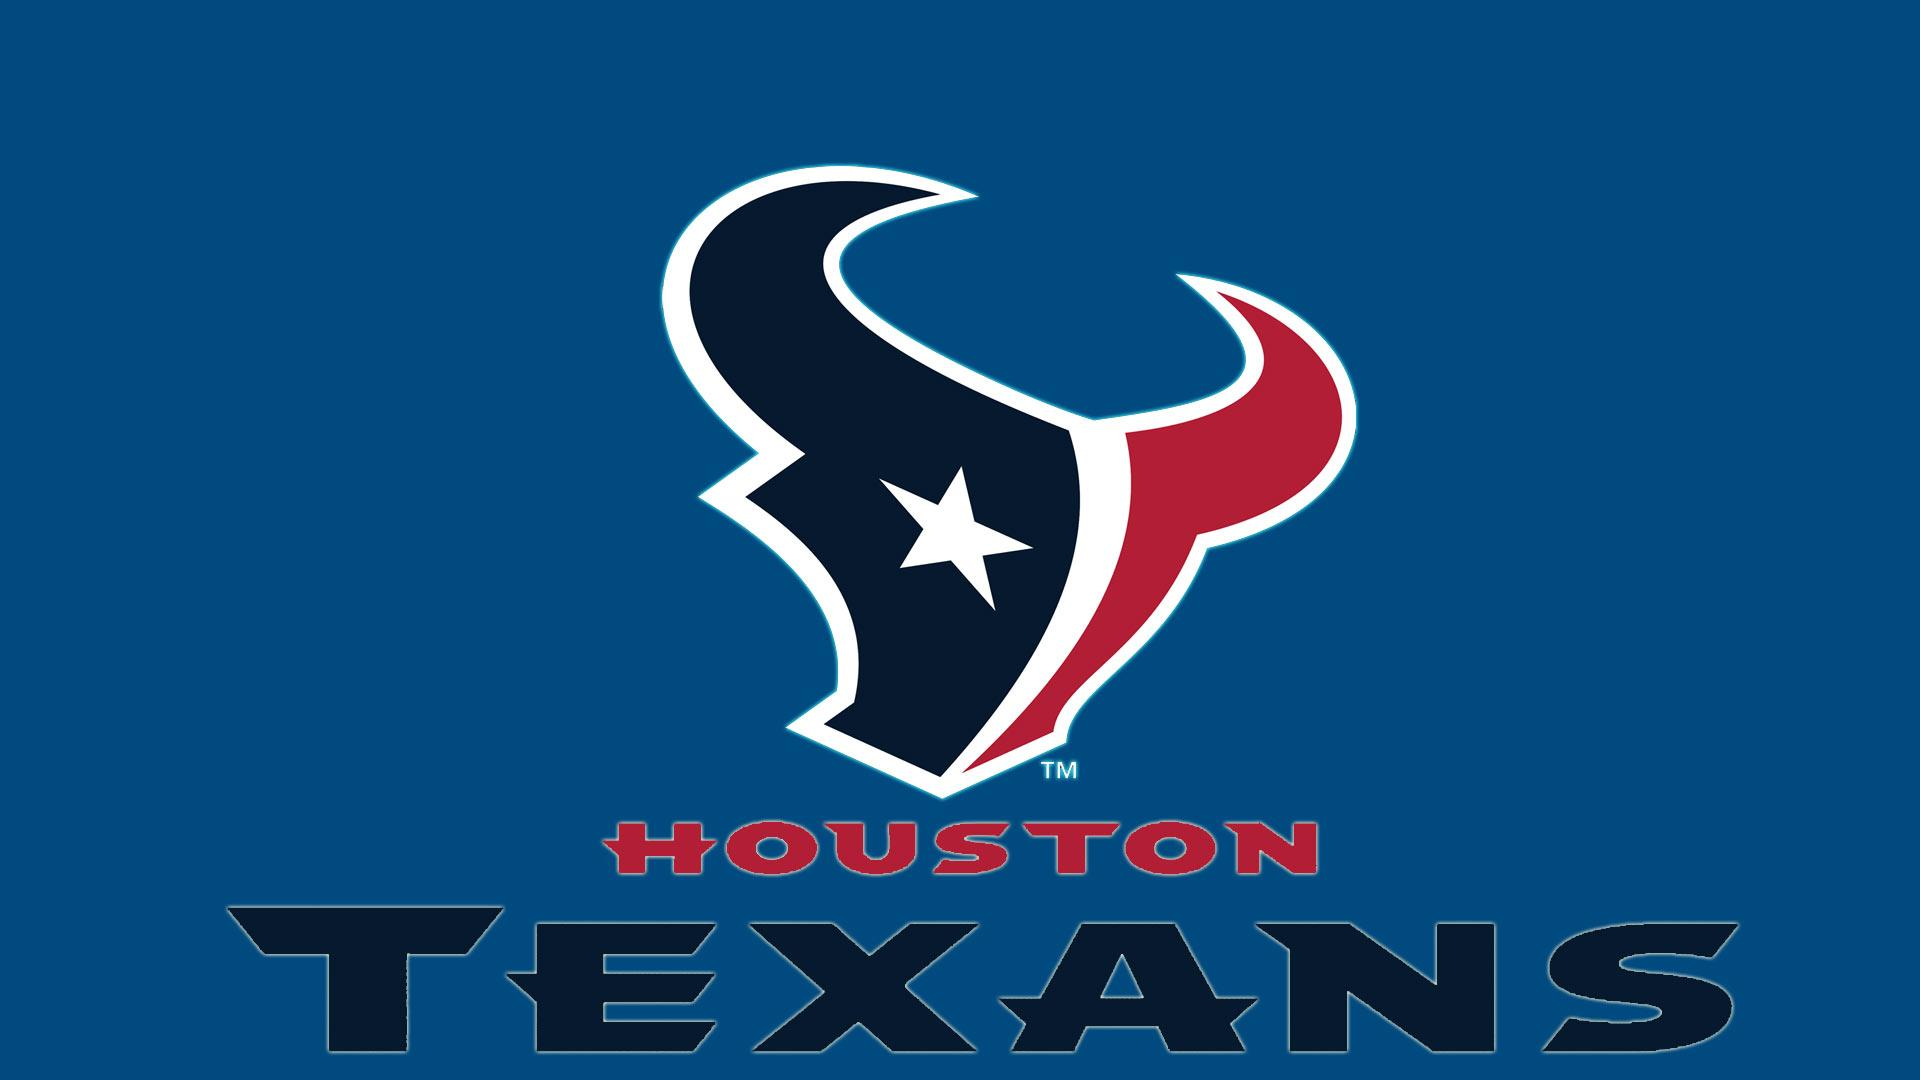 uploaded in Houston Texans Wallpaper 2015 you can download it 1920x1080